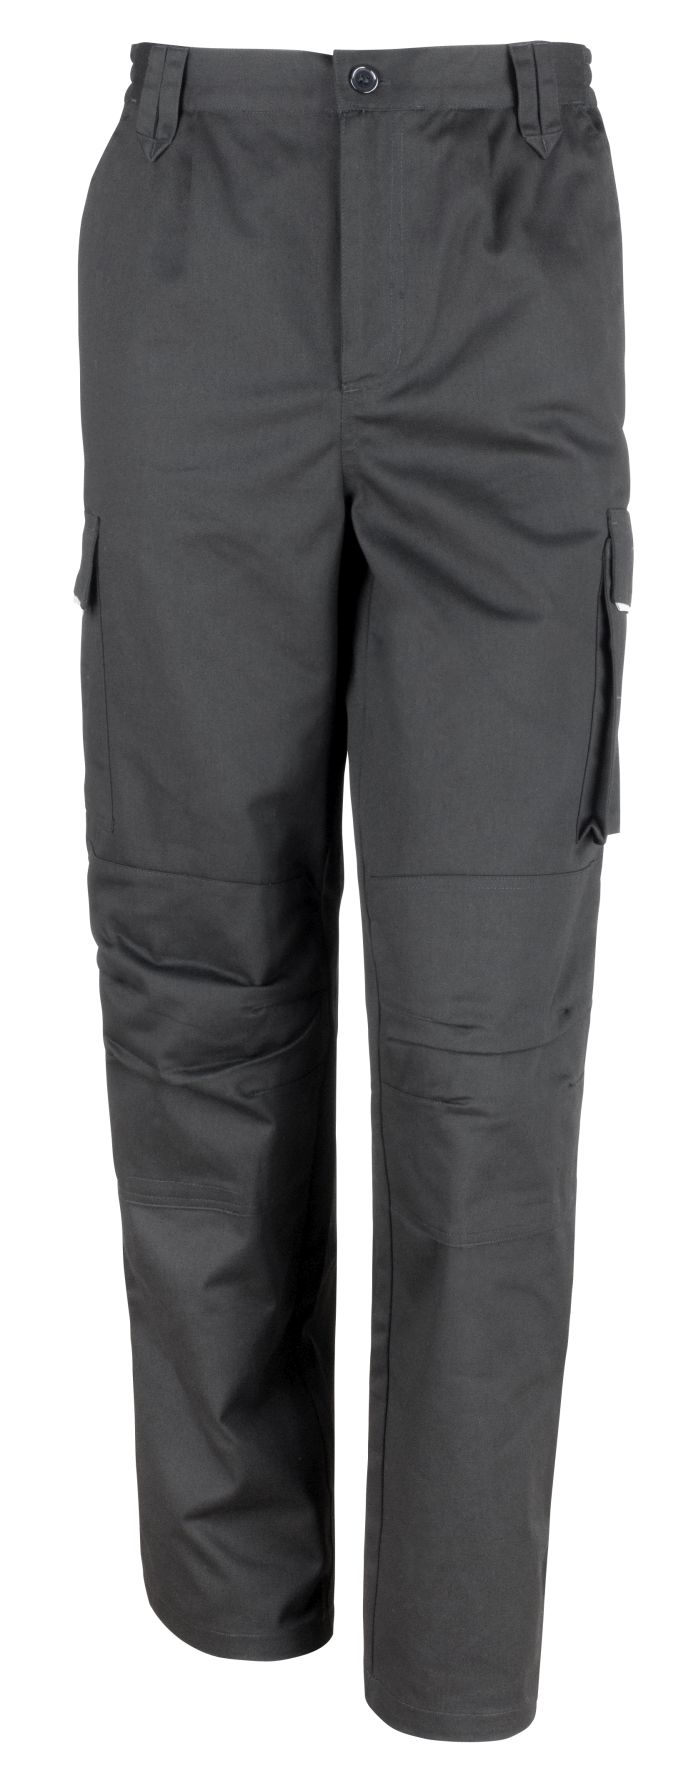 Spodnie Unisex Workguard Action Trousers | Result